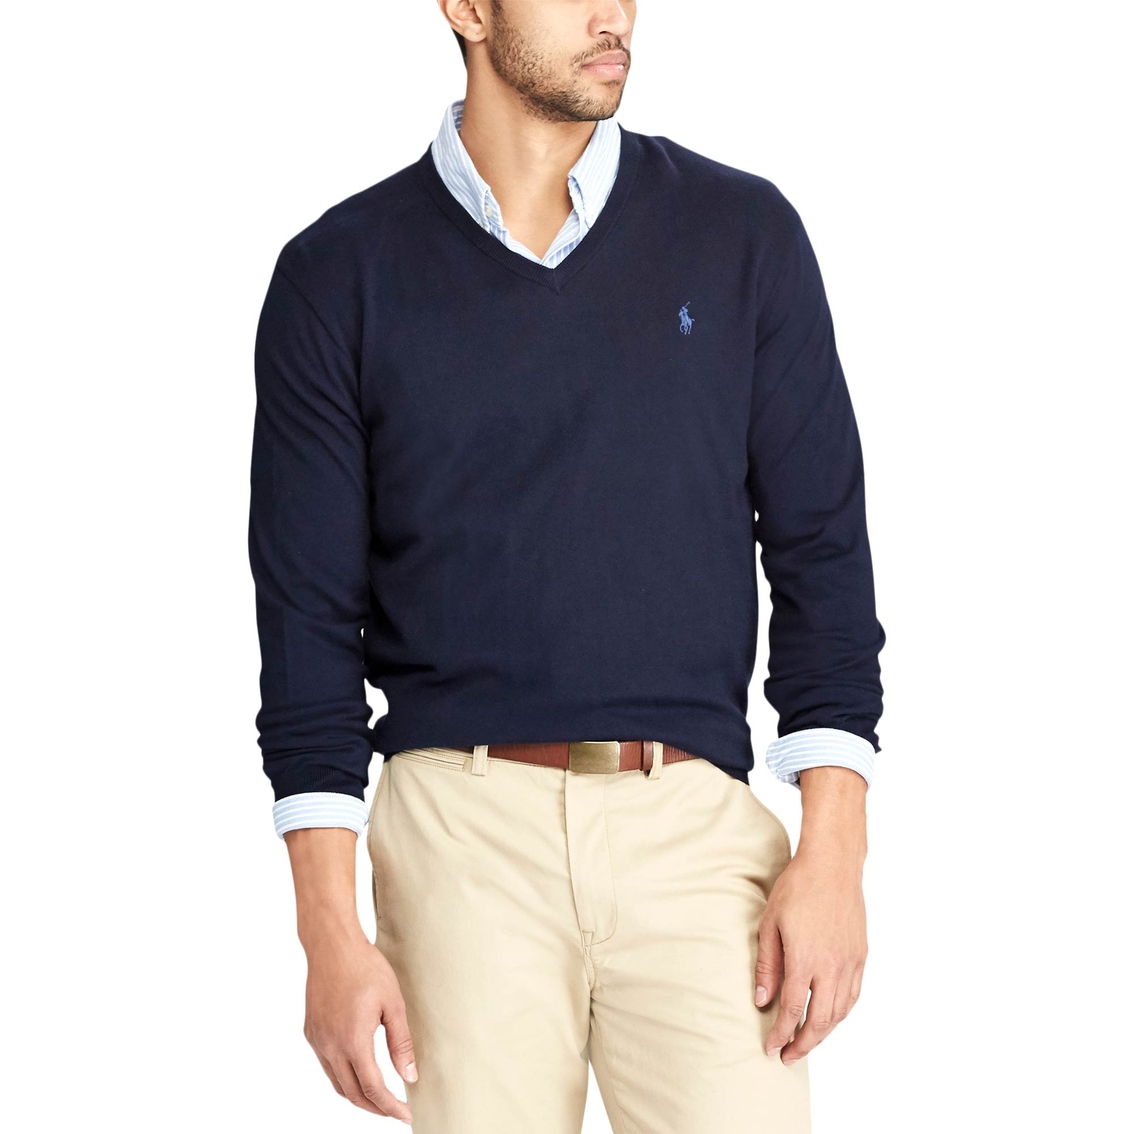 Polo Ralph Lauren Cotton V-neck Sweater   Polo Ralph Lauren   Shop ... 4fdc9d72c3e